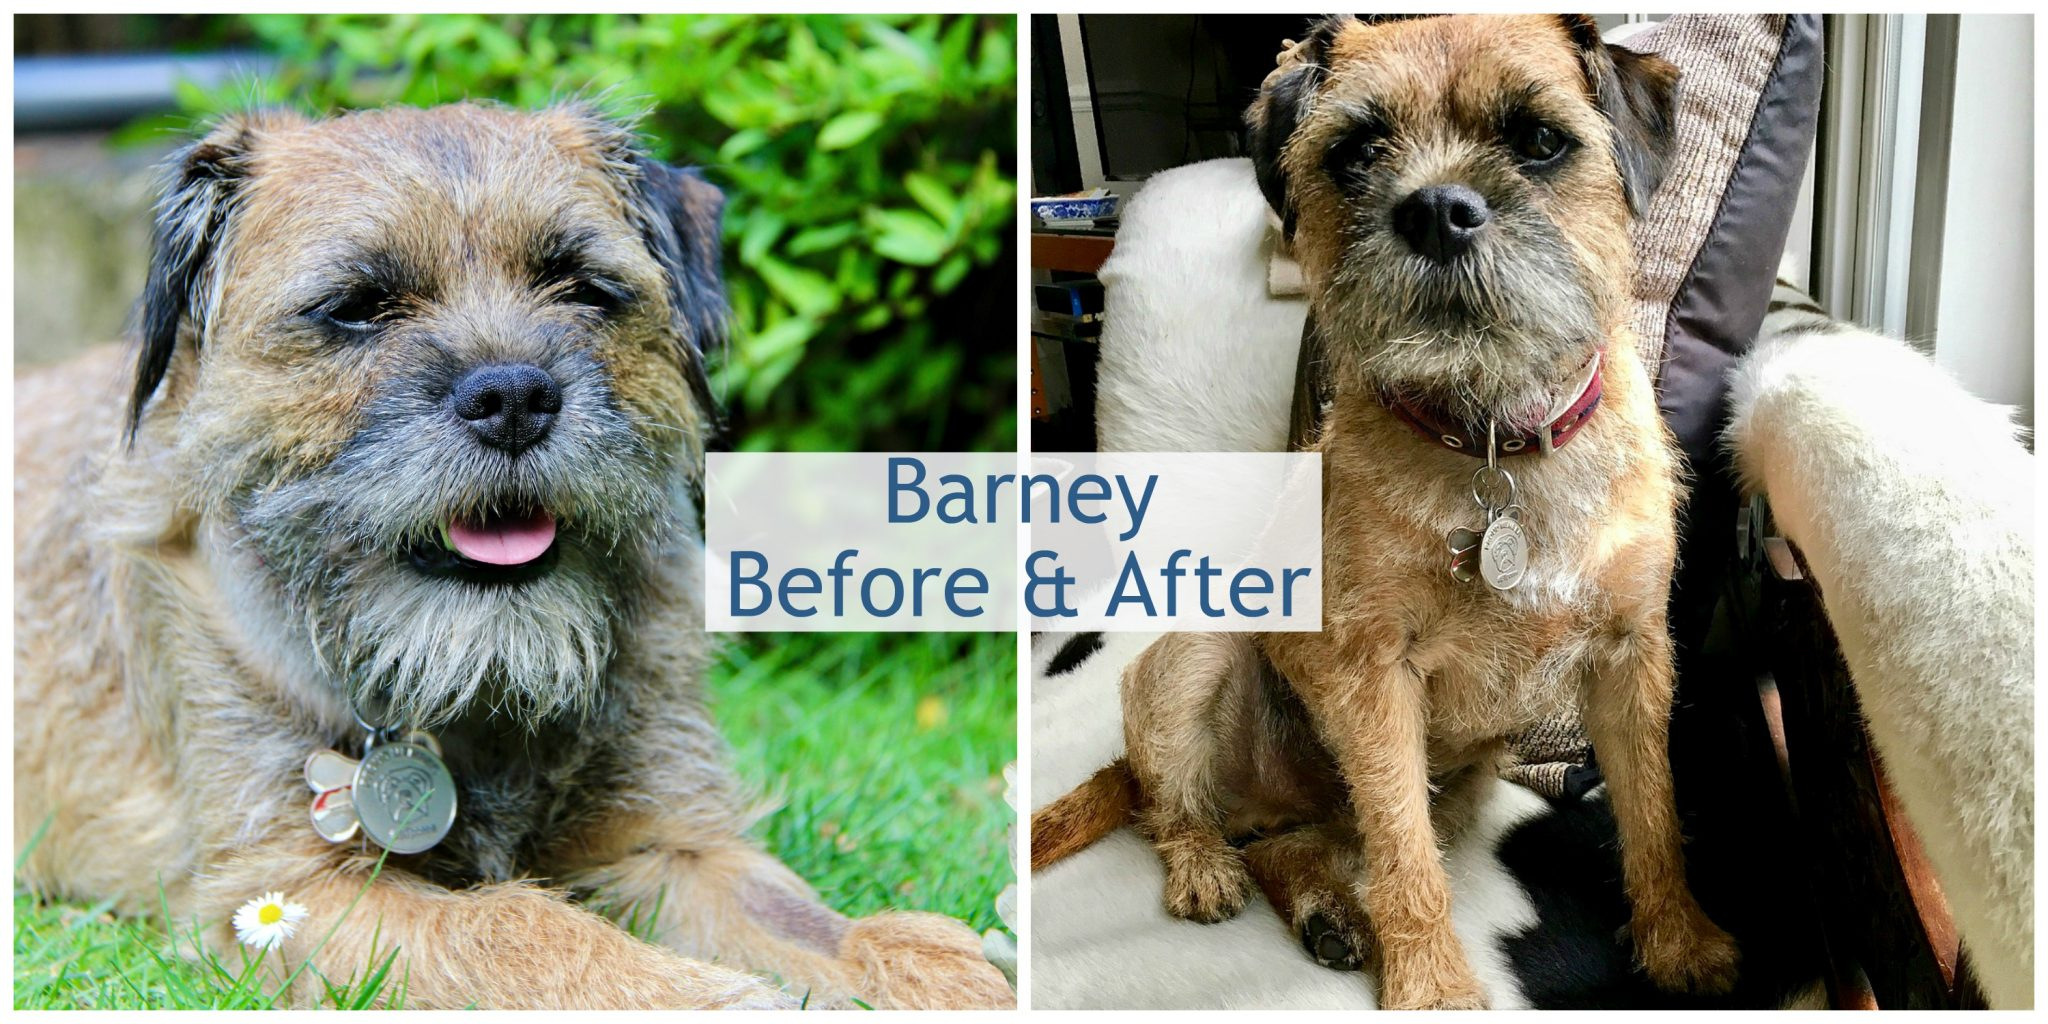 Dog Groomer {Dog Grooming} #DogHealth #Dogs #Grooming www.scruffylittleterrier.com